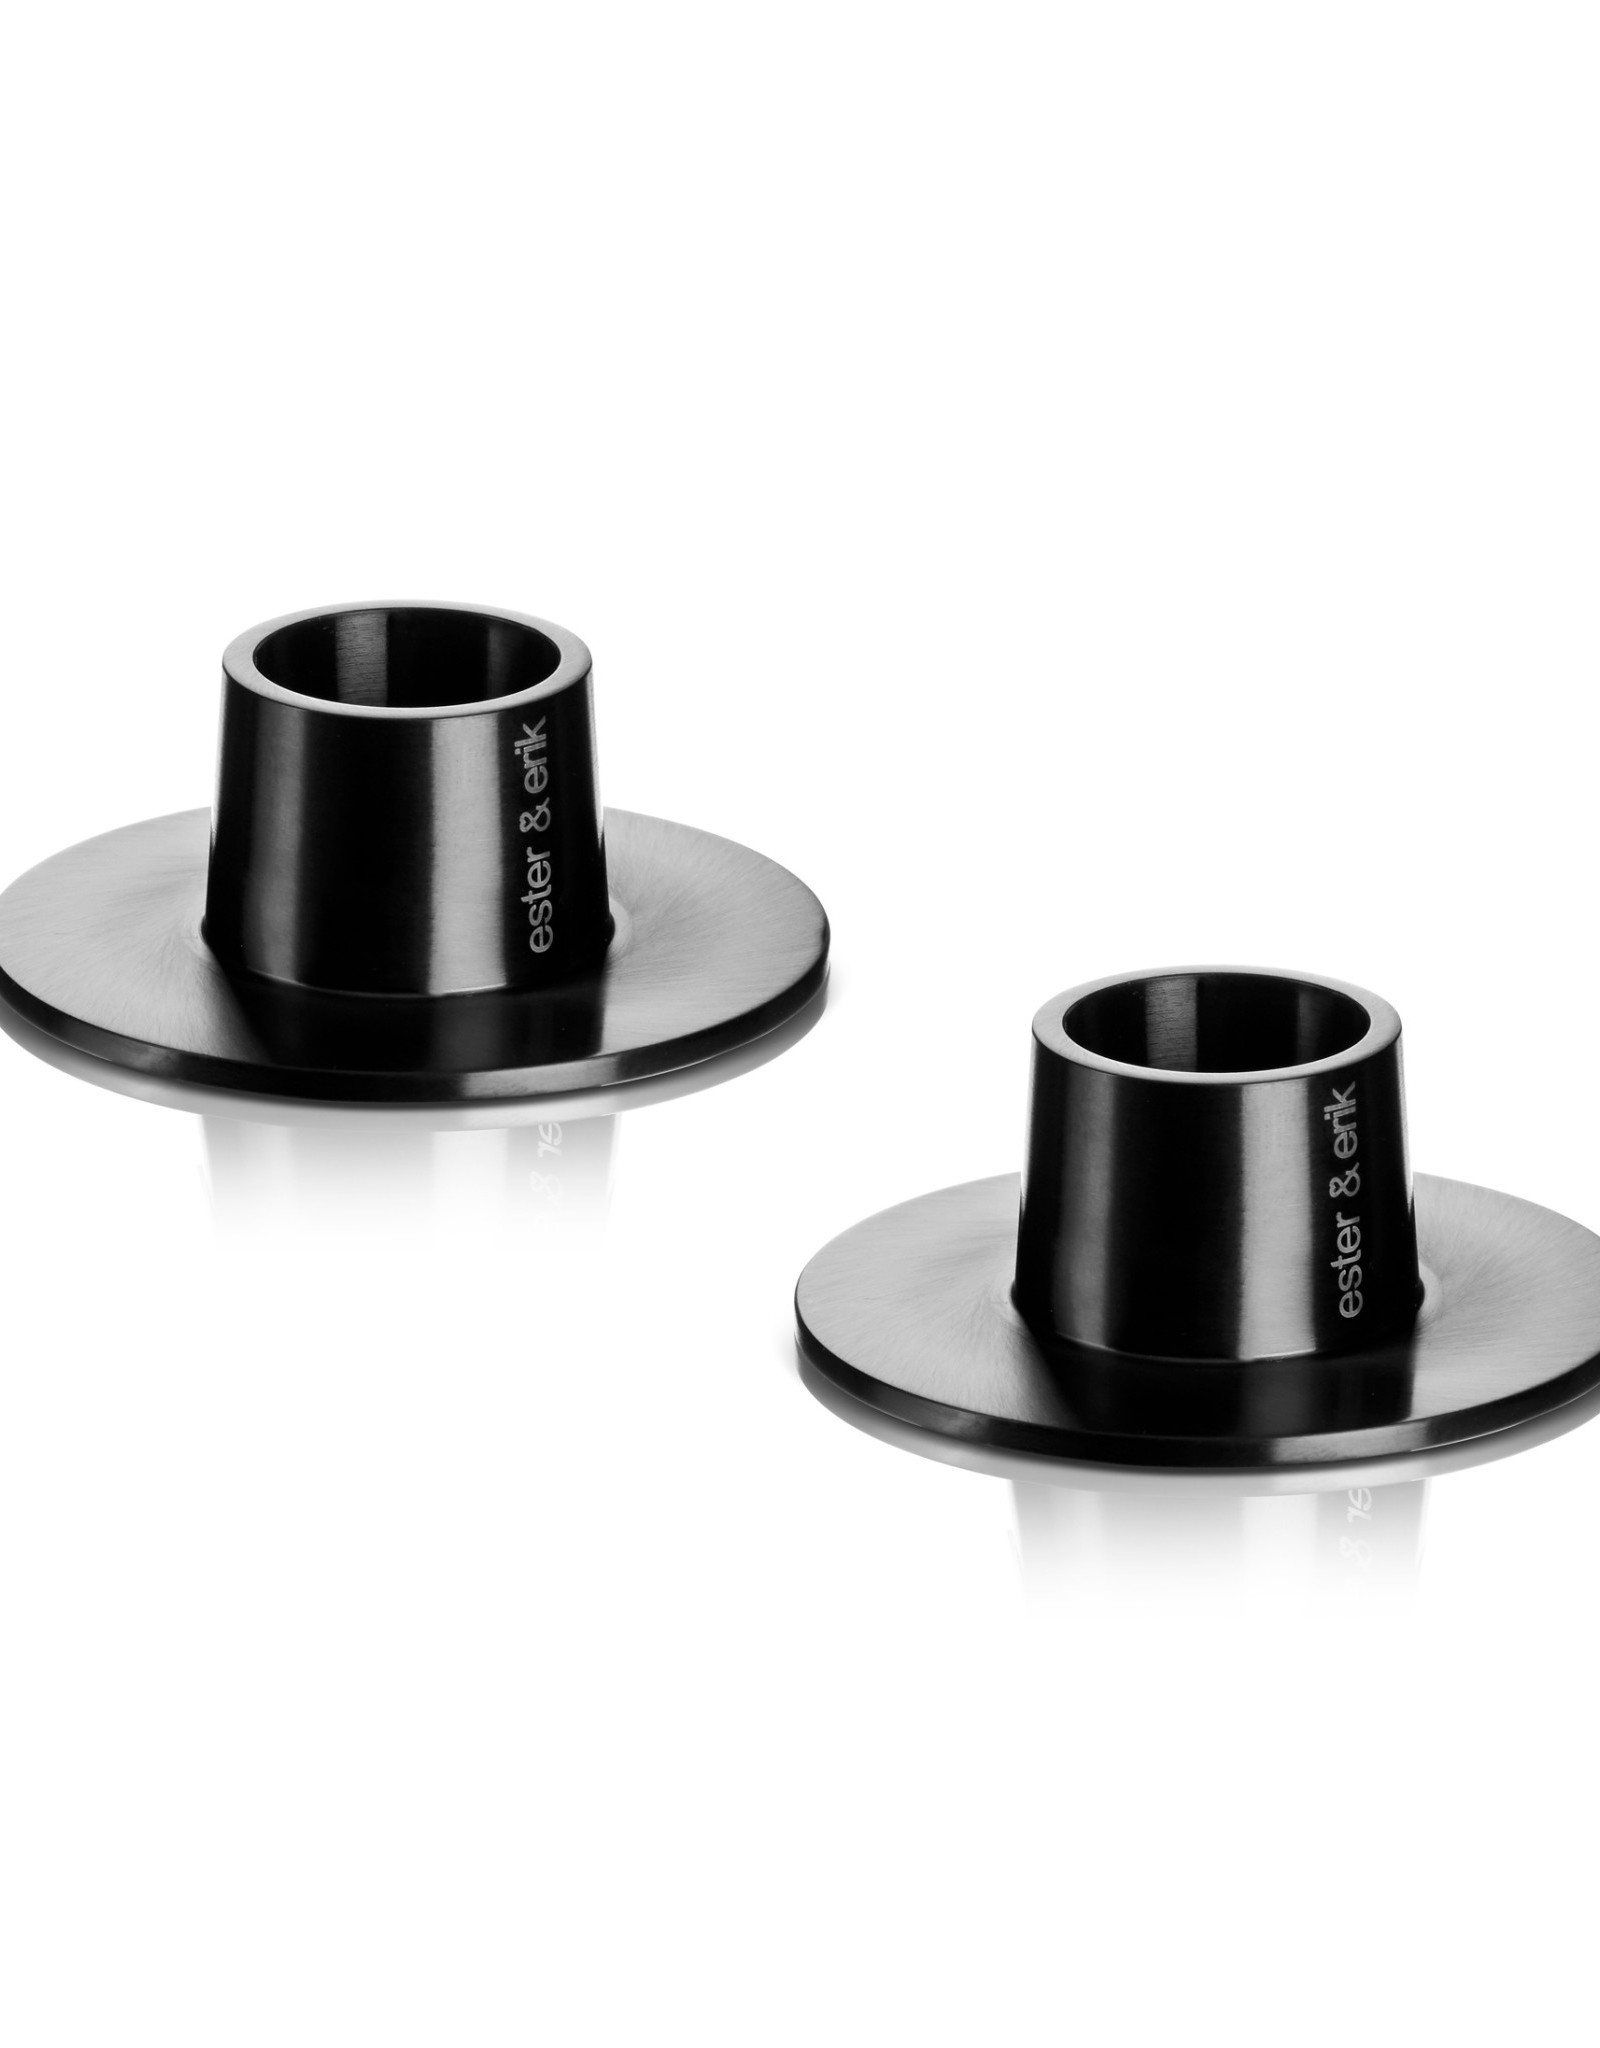 Ester & Eric Candle Holder - Set of 2